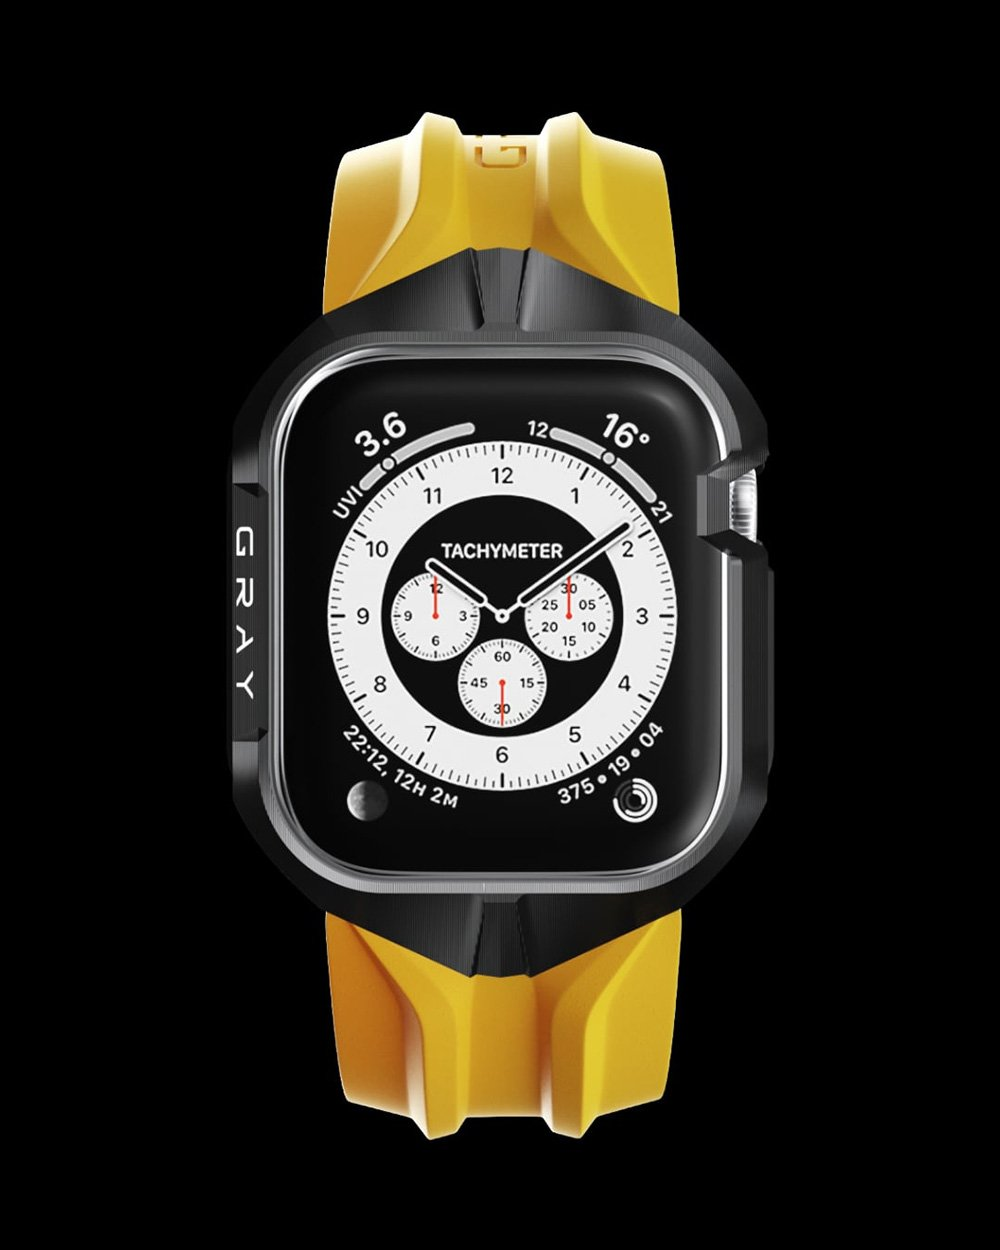 Yellow and Black Cyberwatch Case on Apple Watch